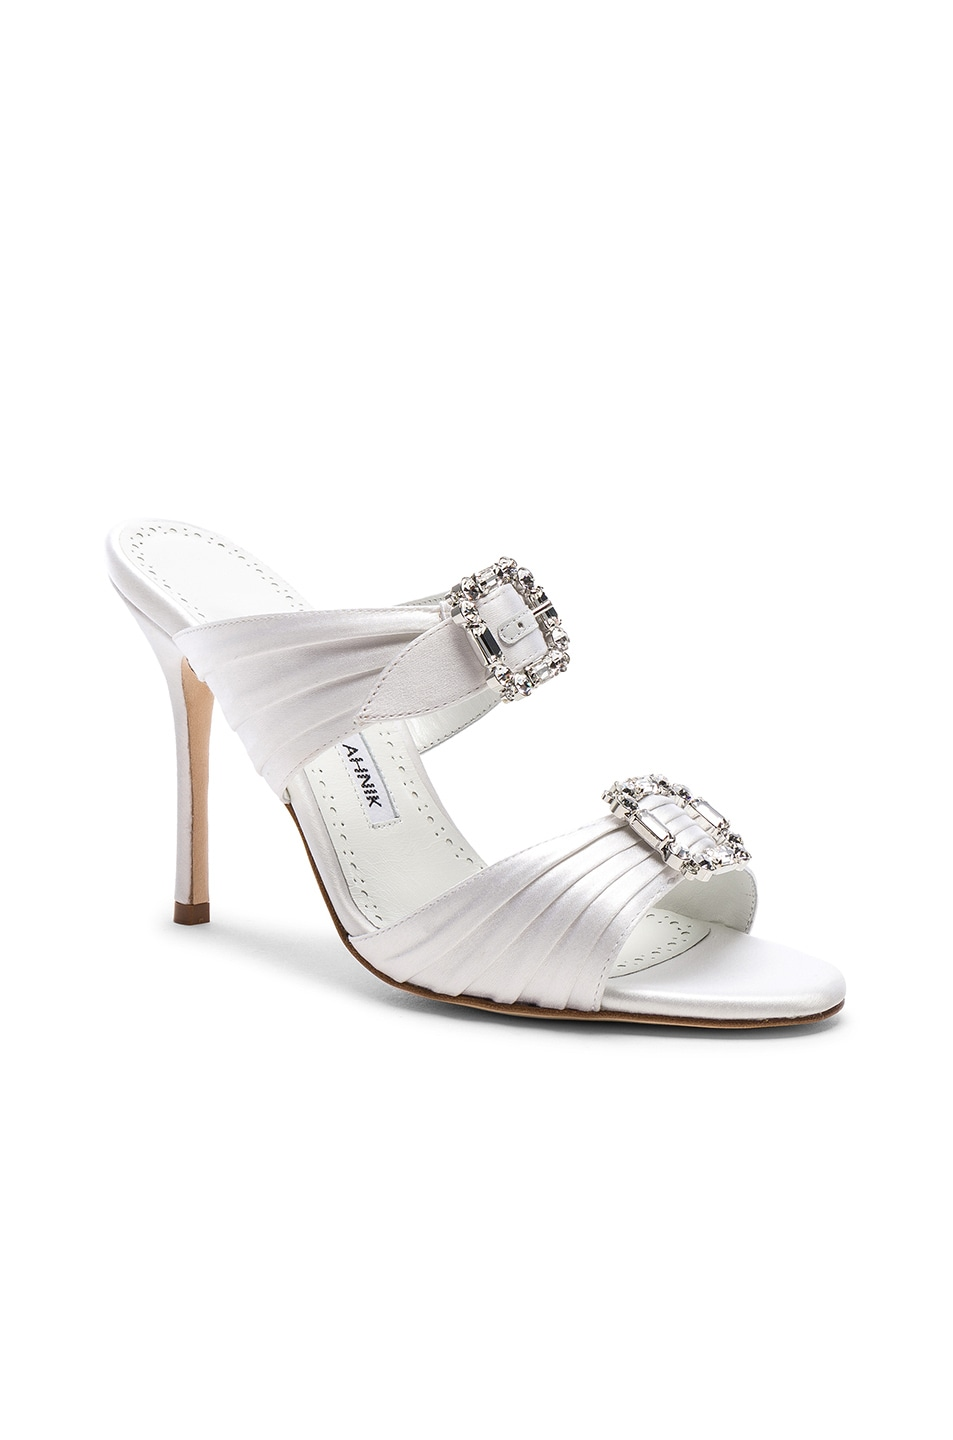 Image 2 of Manolo Blahnik Satin Pow 105 Sandals in White